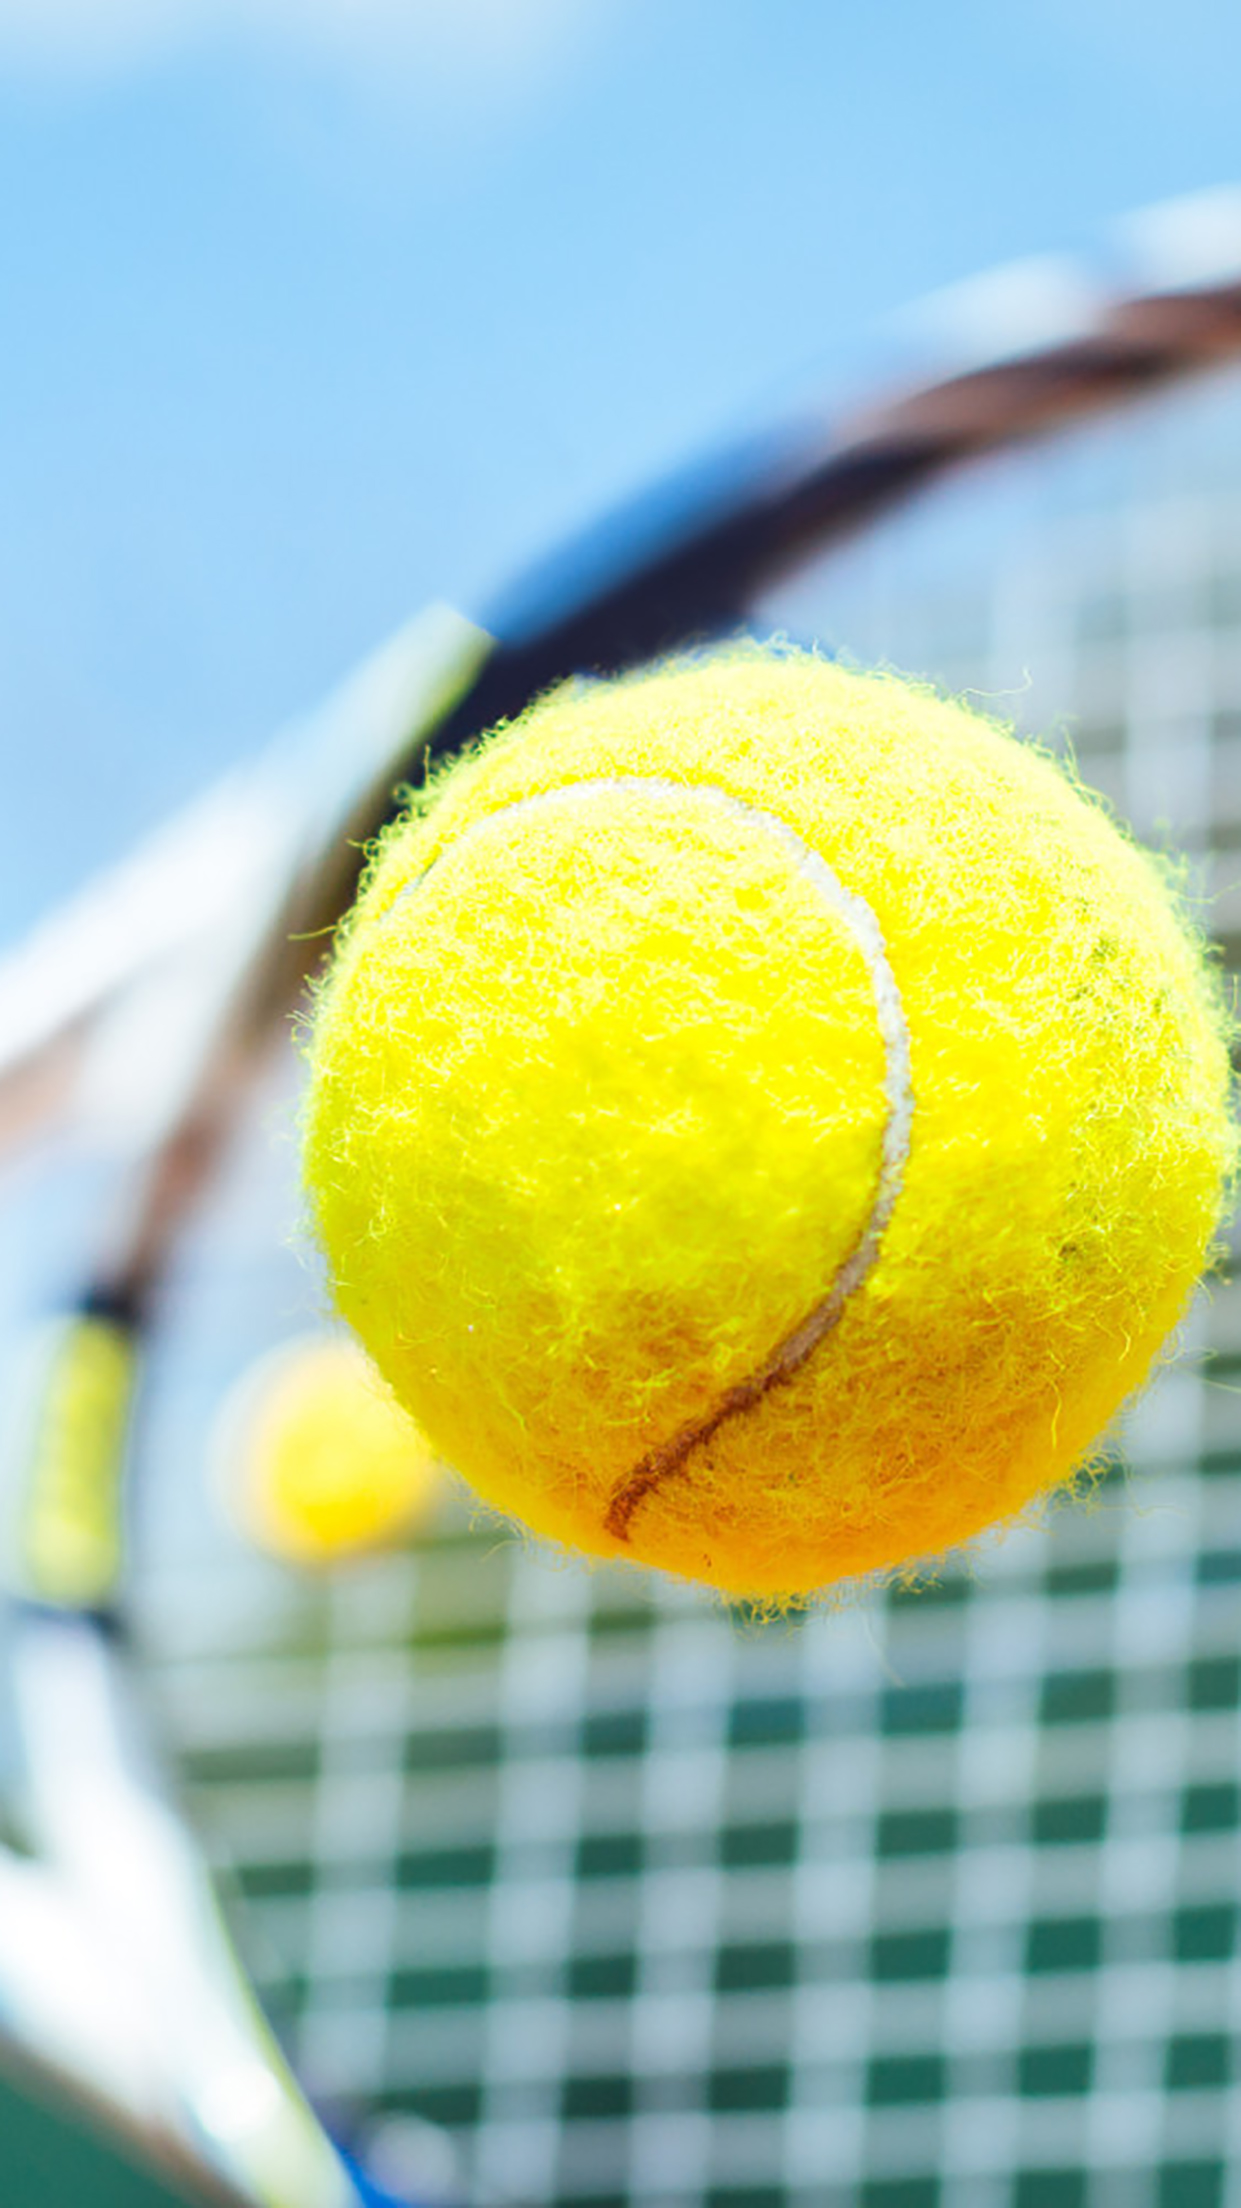 Tennis Ball In The Air 3Wallpapers iPhone Parallax Tennis Ball : In The Air